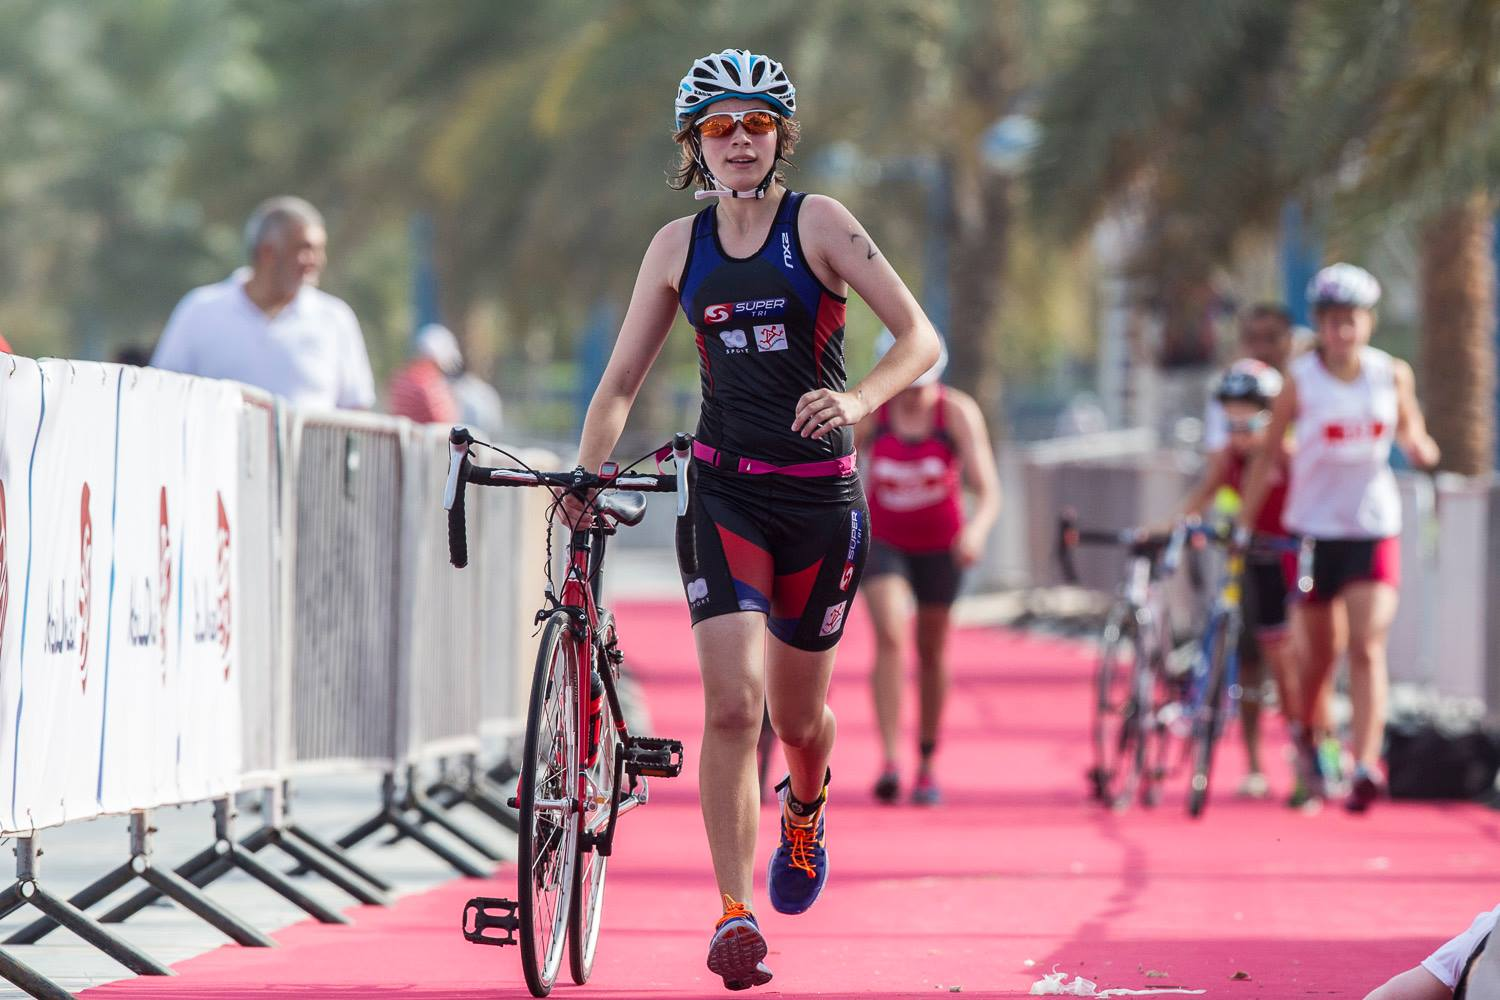 Abu Dhabi Triathlon: on the Corniche today to race the largest junior triathlon in Arabia.